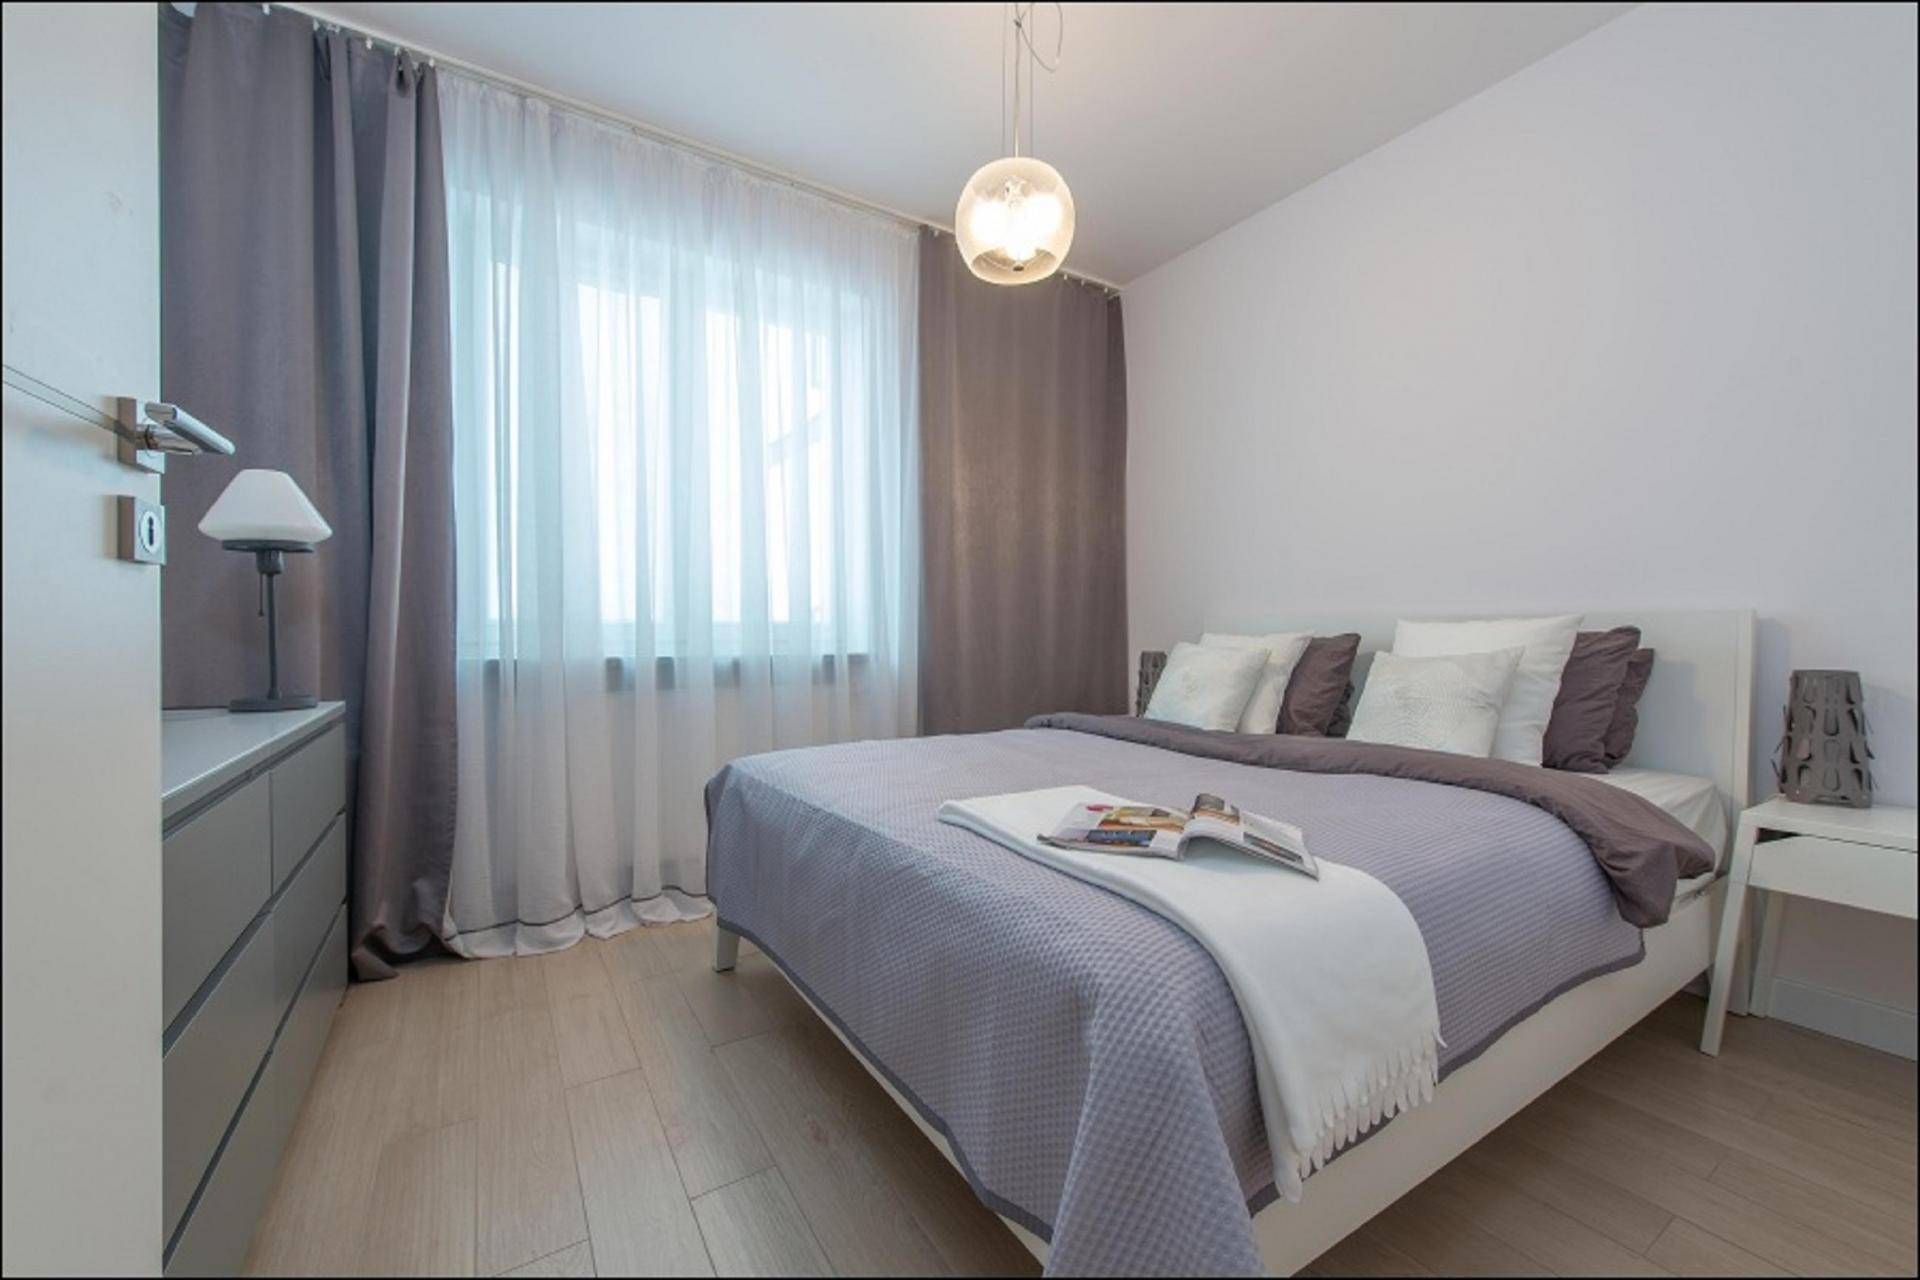 Bed at Piekna Apartment, Centre, Warsaw